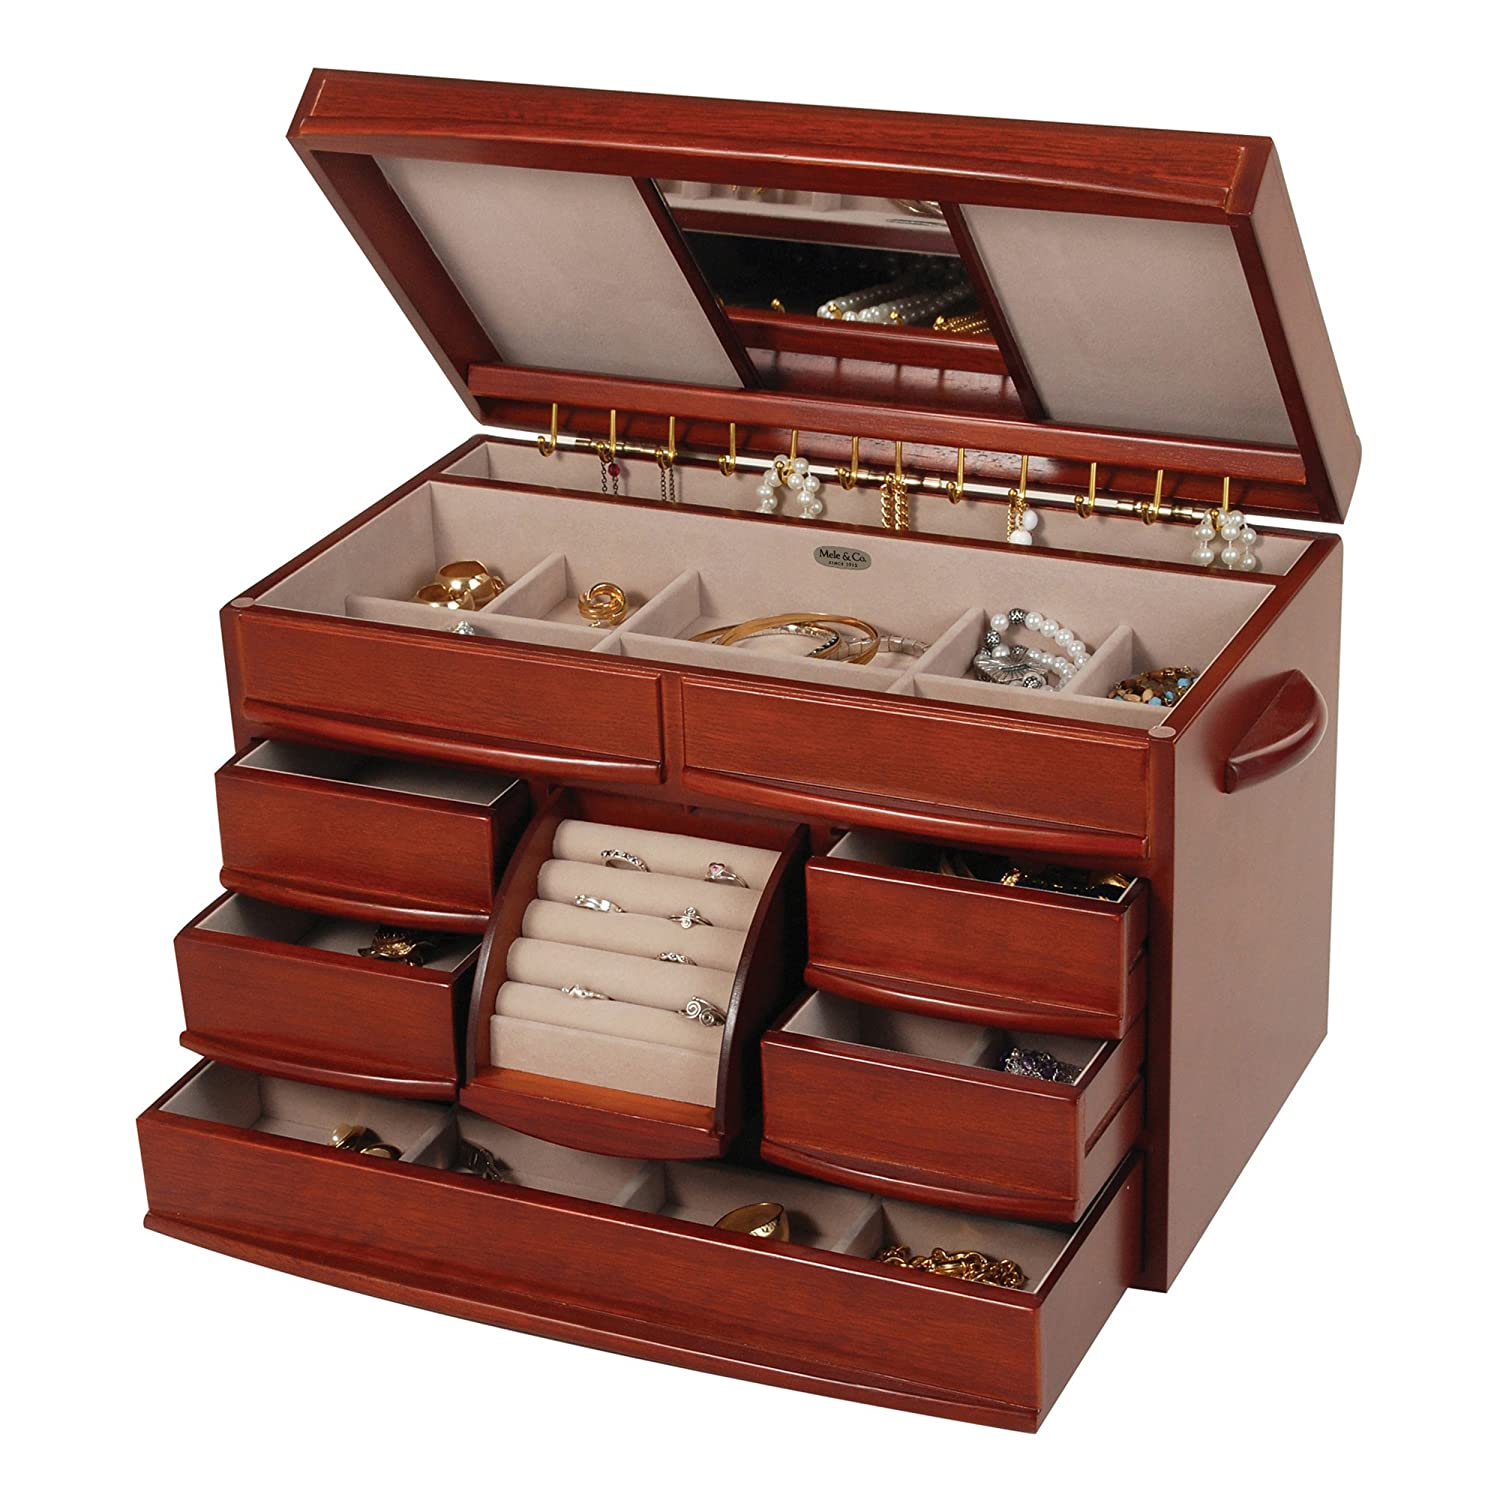 Amazon.com: Mele & Co. Empress Wooden Jewelry Box (Walnut Finish ...